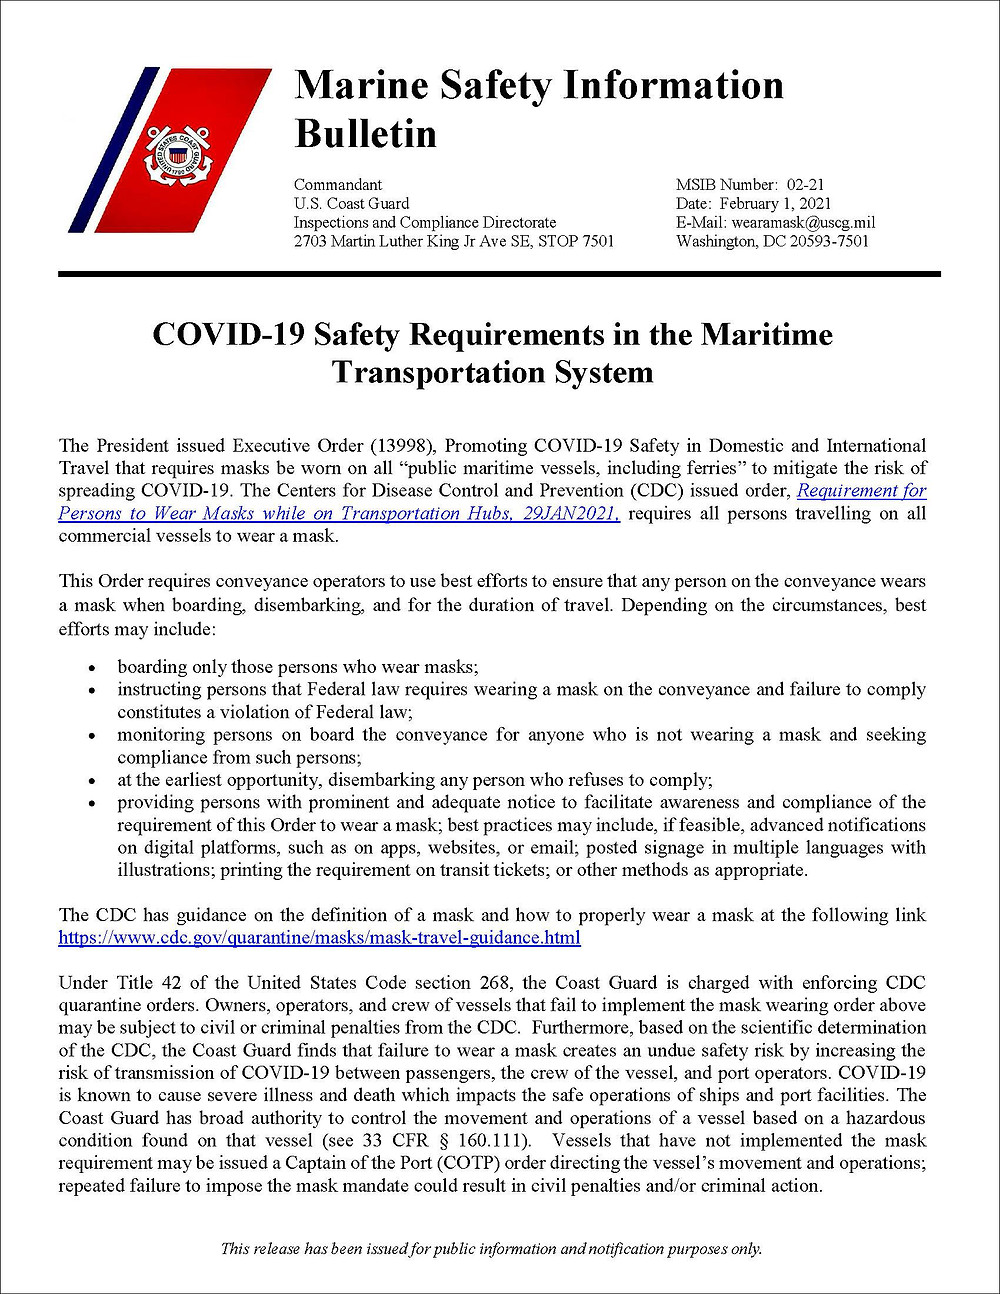 Marine Safety Information Bulletin 02-21